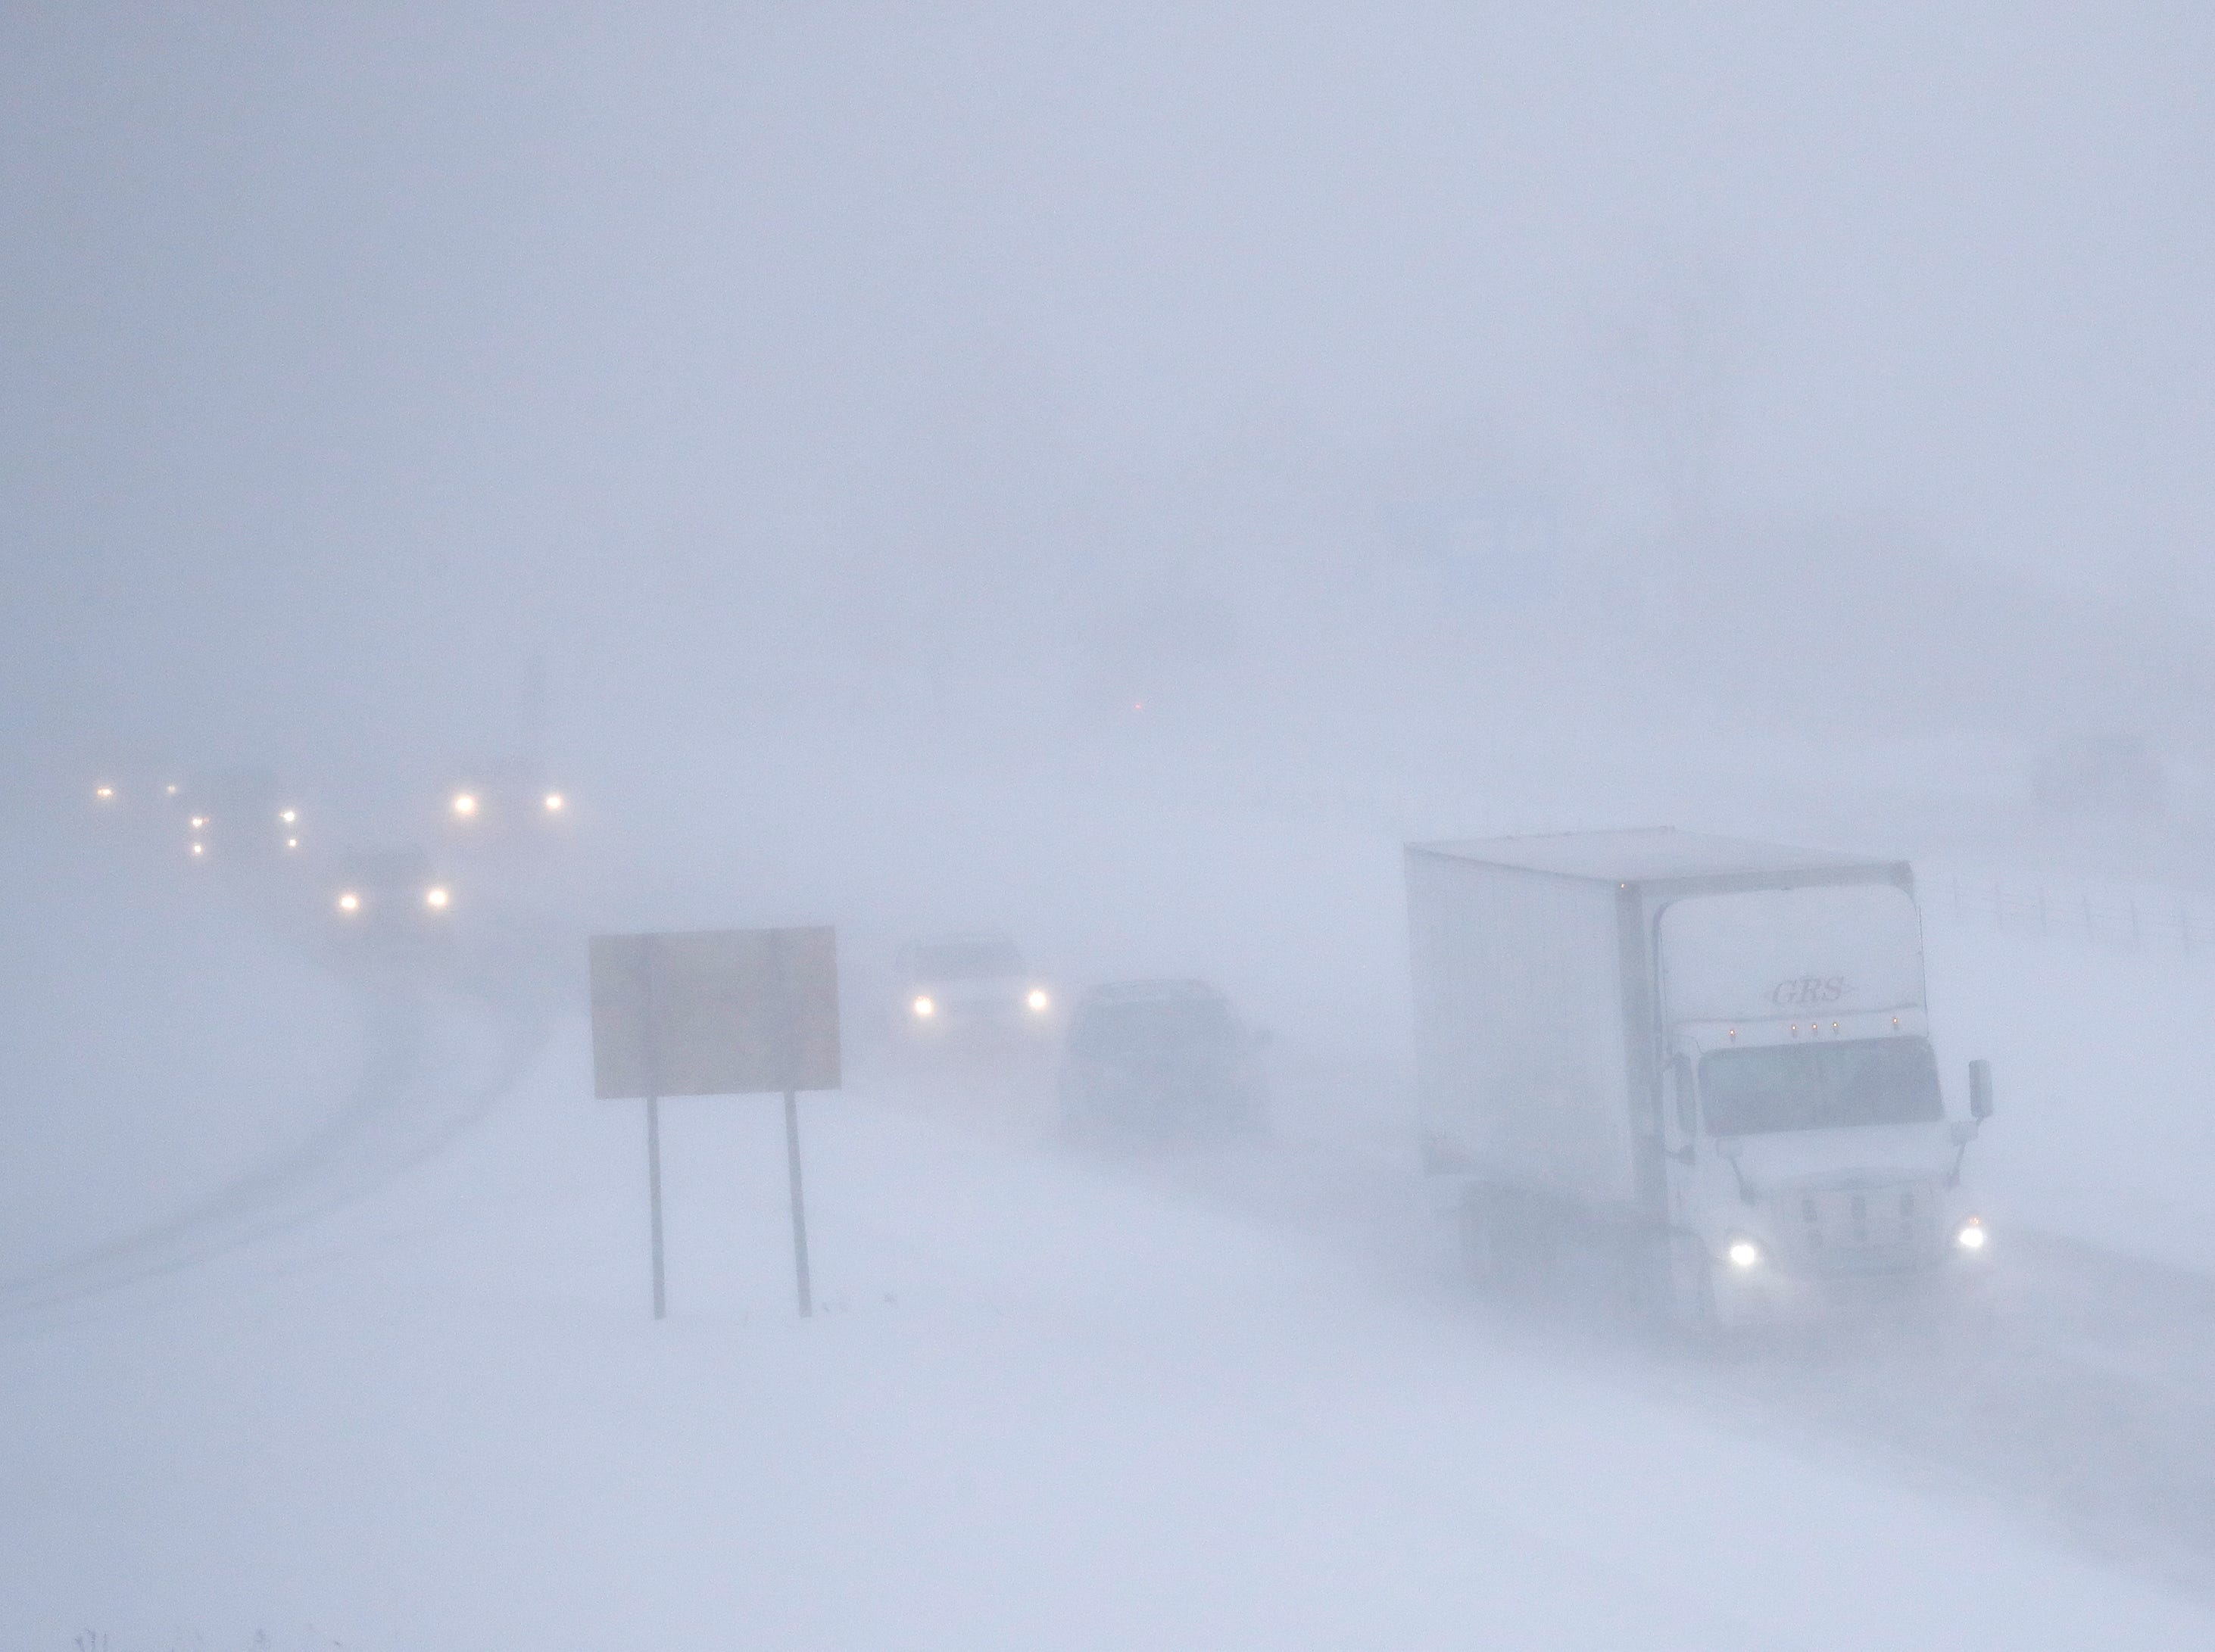 Traffic moves slowly northbound in poor visability conditions along I-41 during a snowstorm Monday, January 28, 2019, in Appleton, Wis.